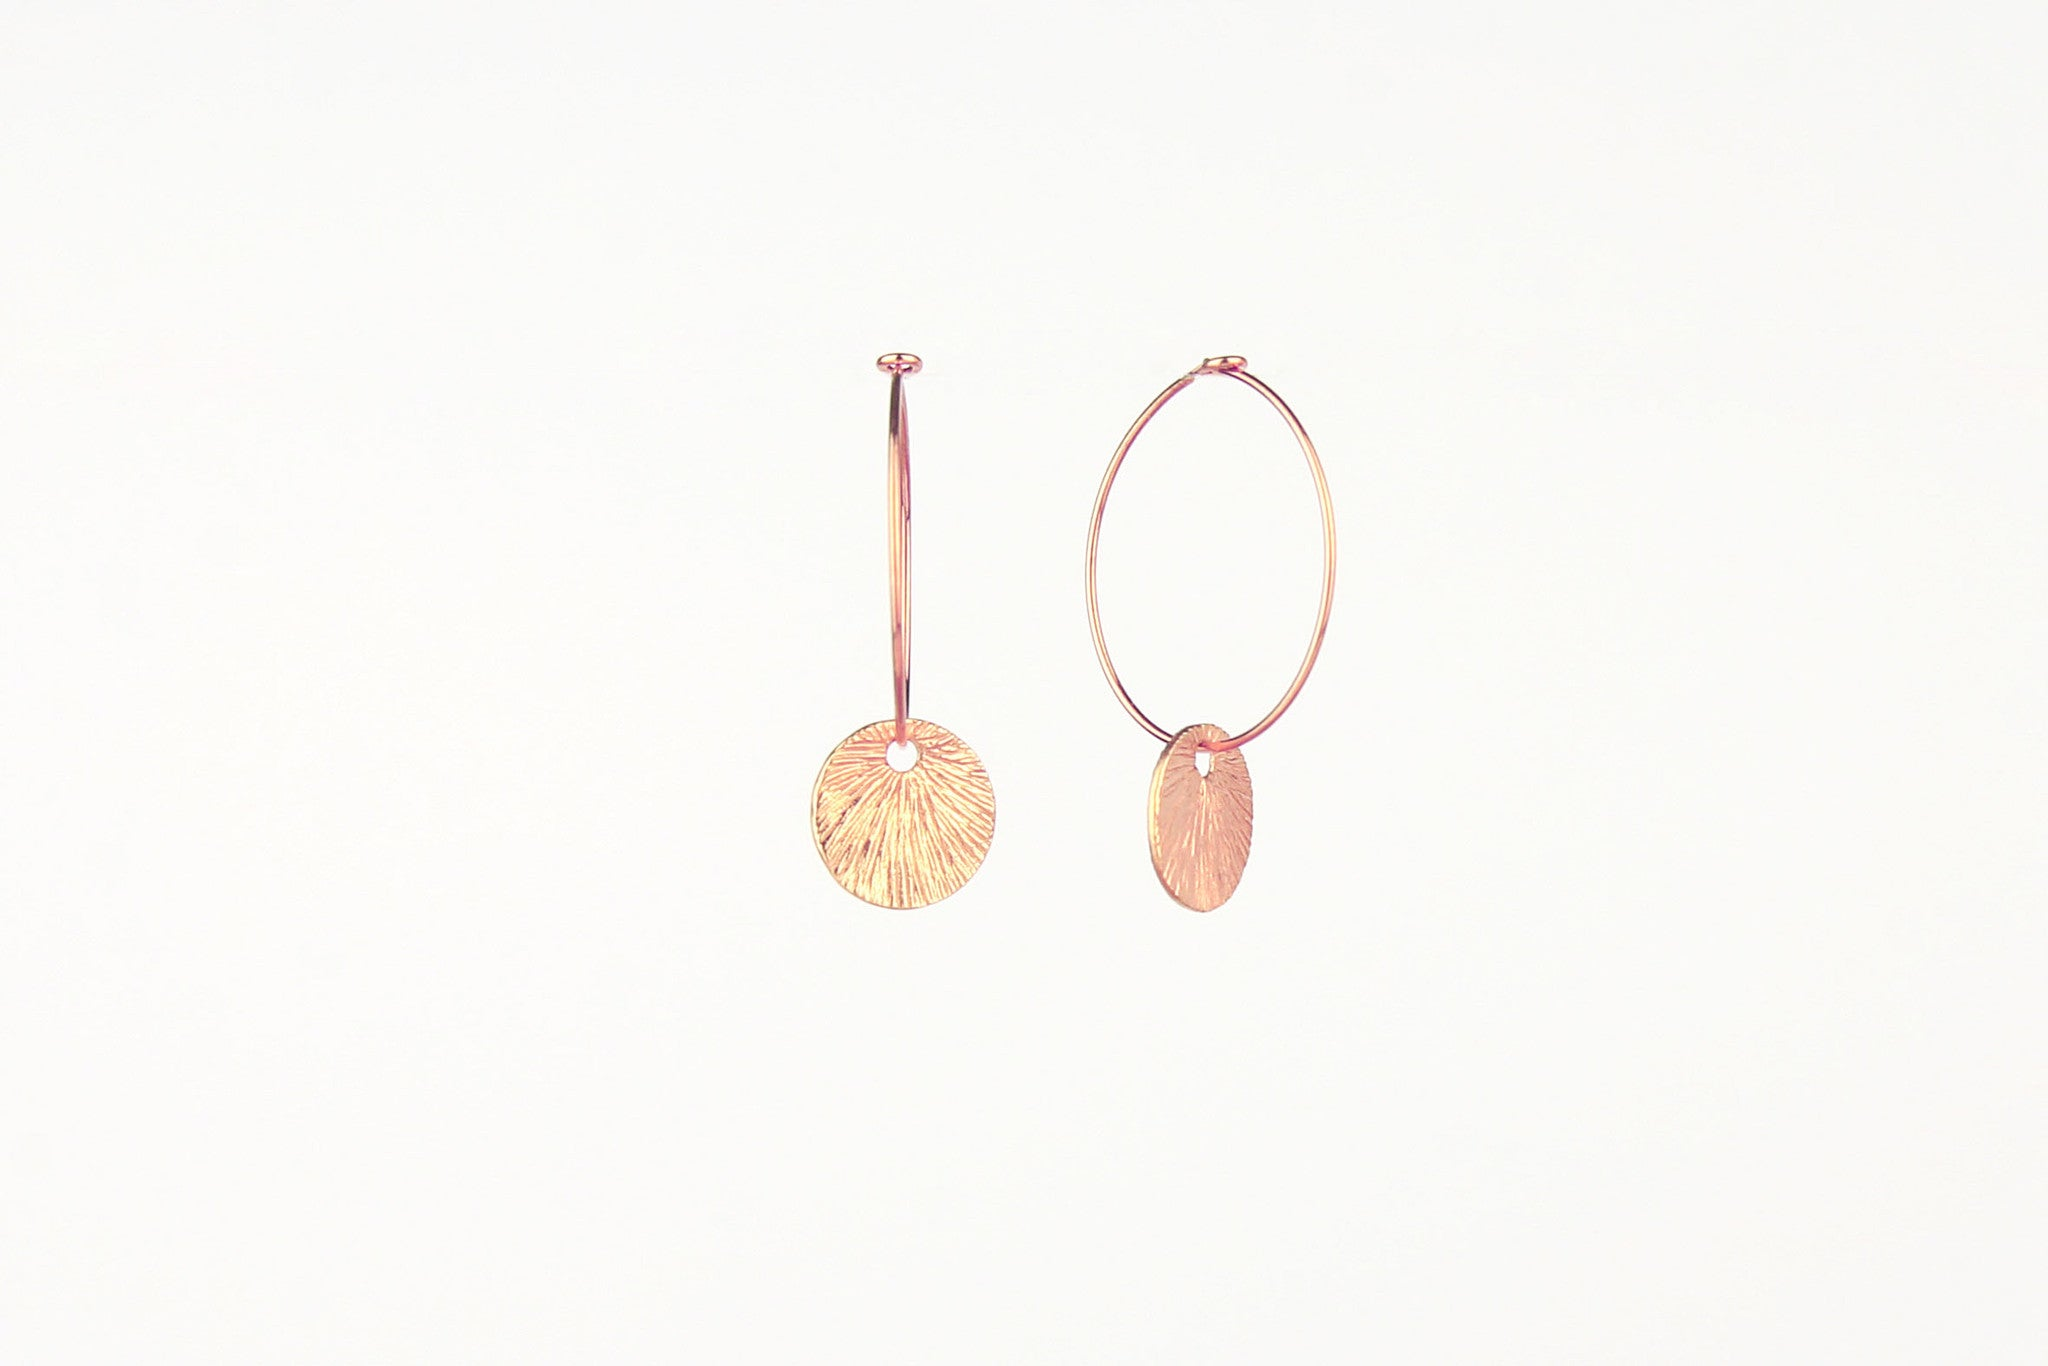 jewelberry ohrringe earrings small shell hoops rose gold plated sterling silver fine jewelry handmade with love fairtrade